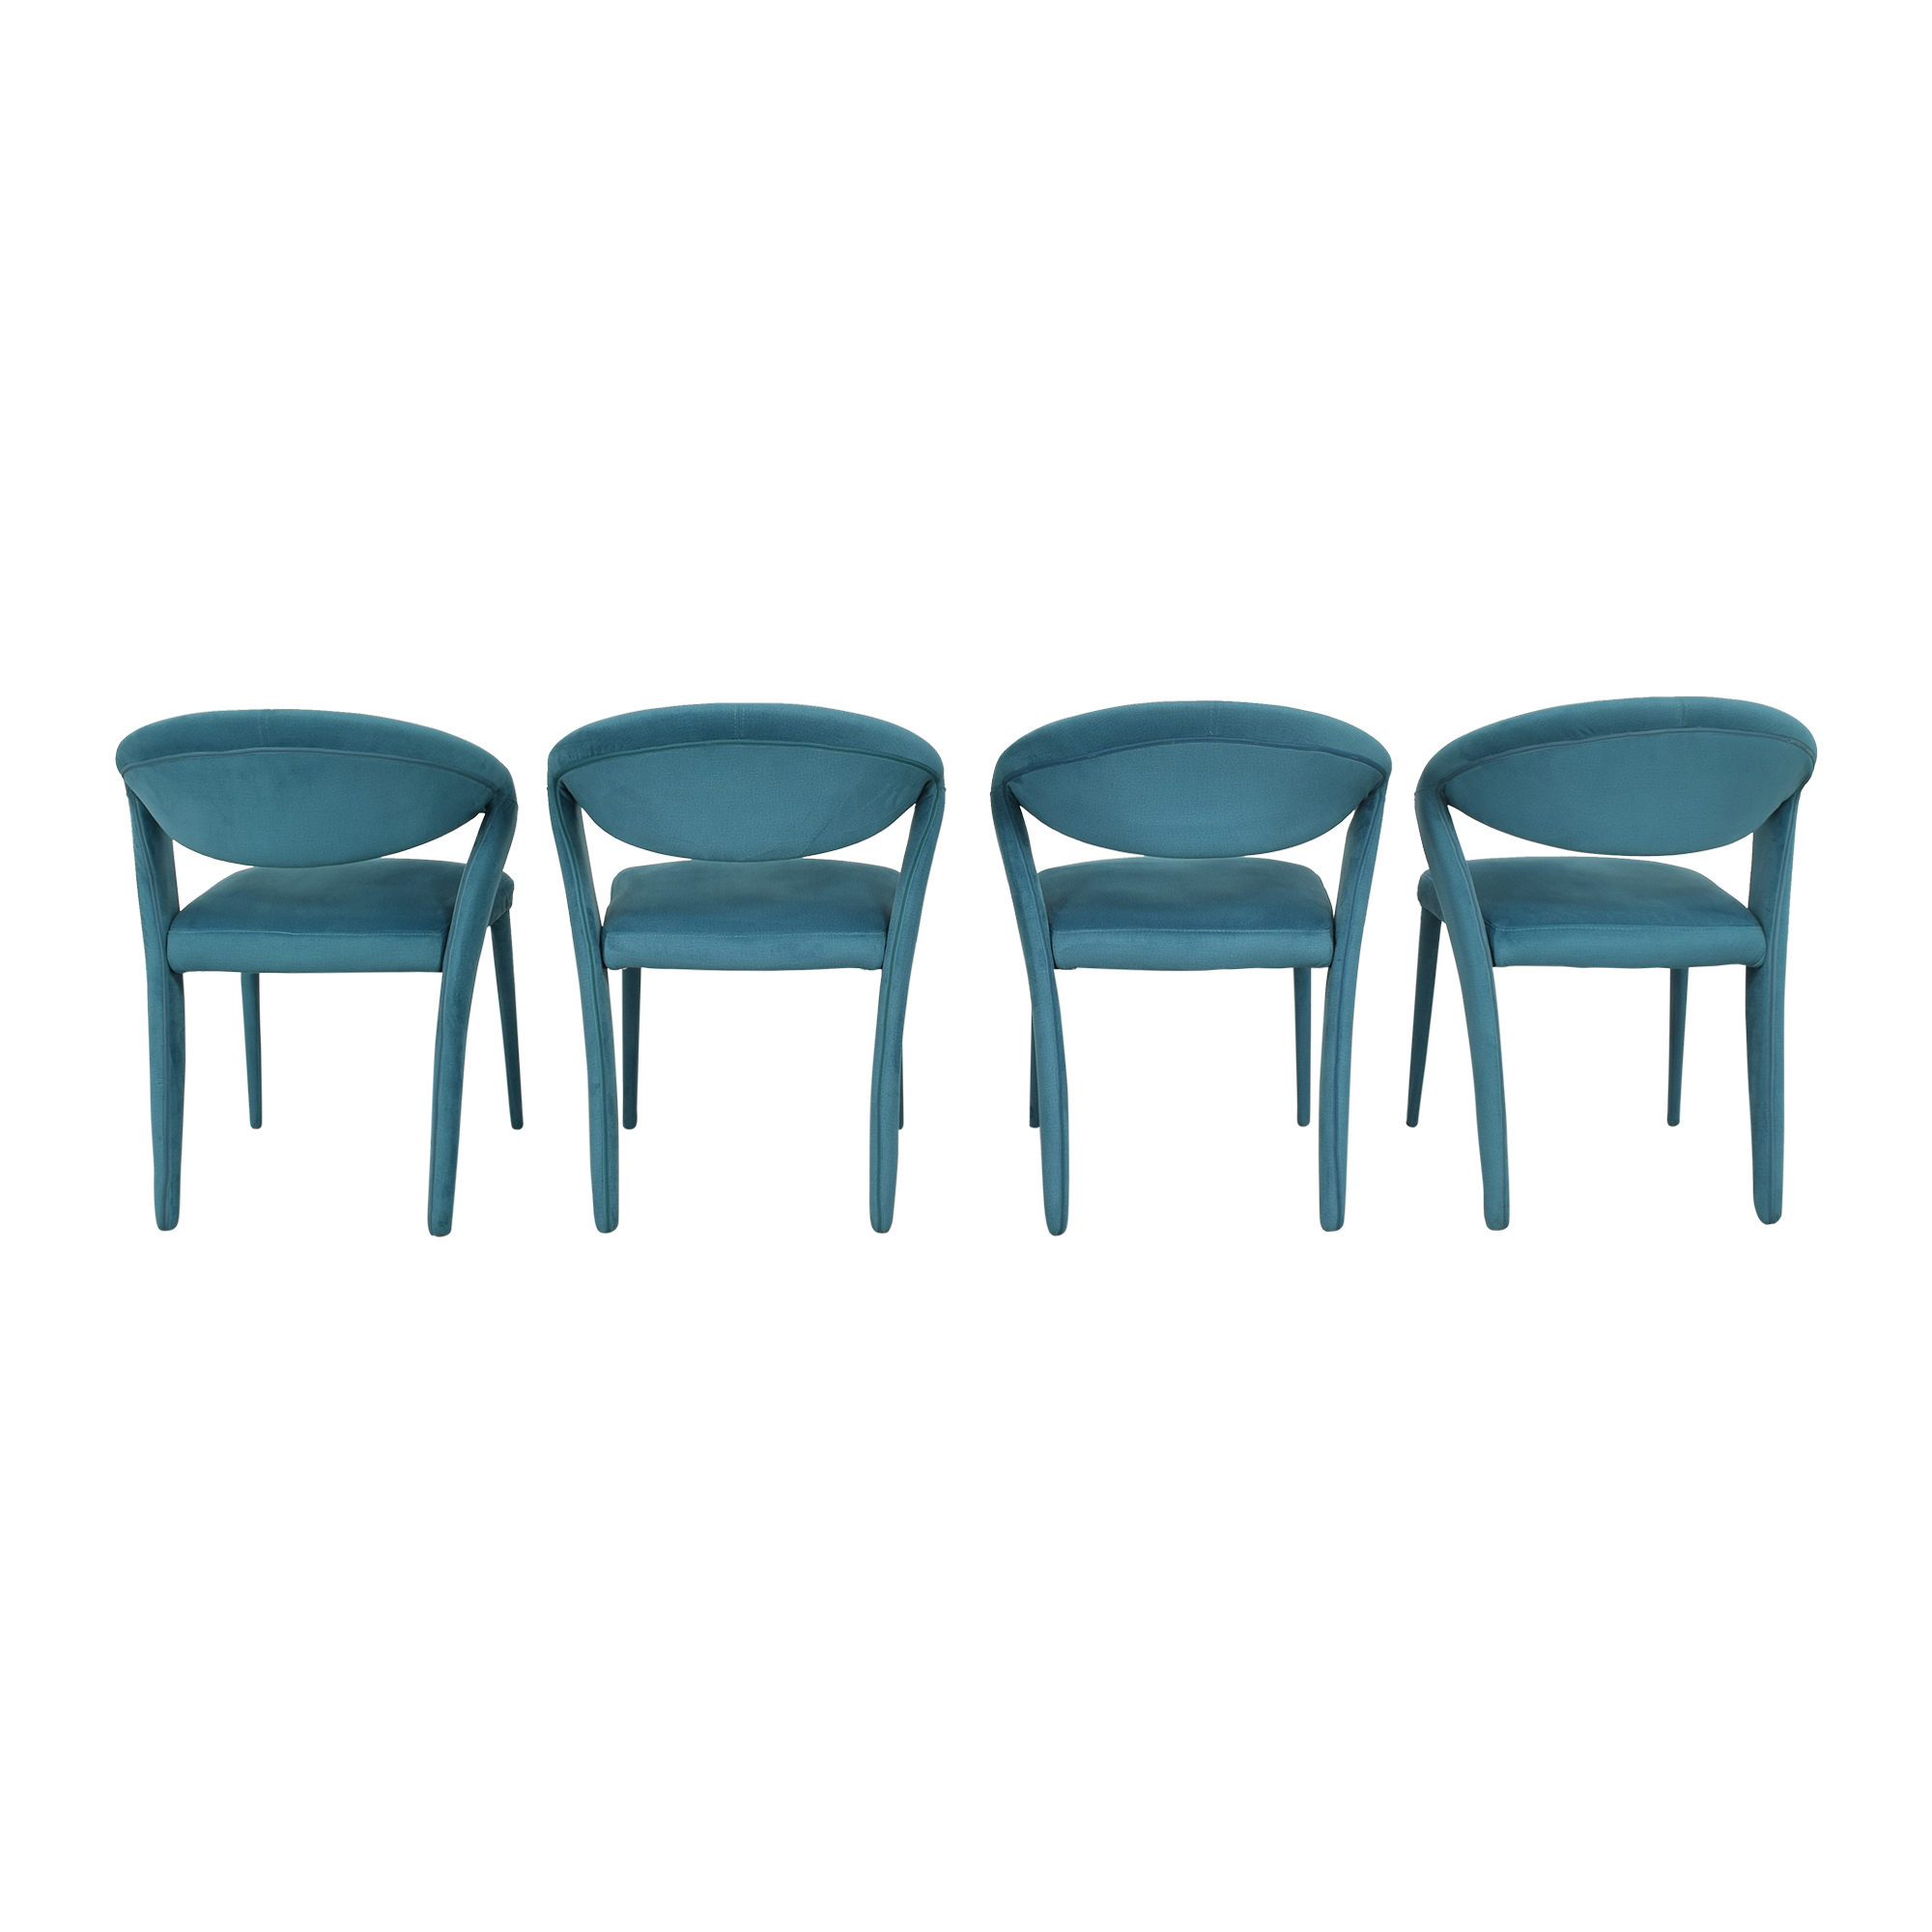 buy Moe's Home Collection Lennox Dining Chairs Moe's Home Collection Chairs